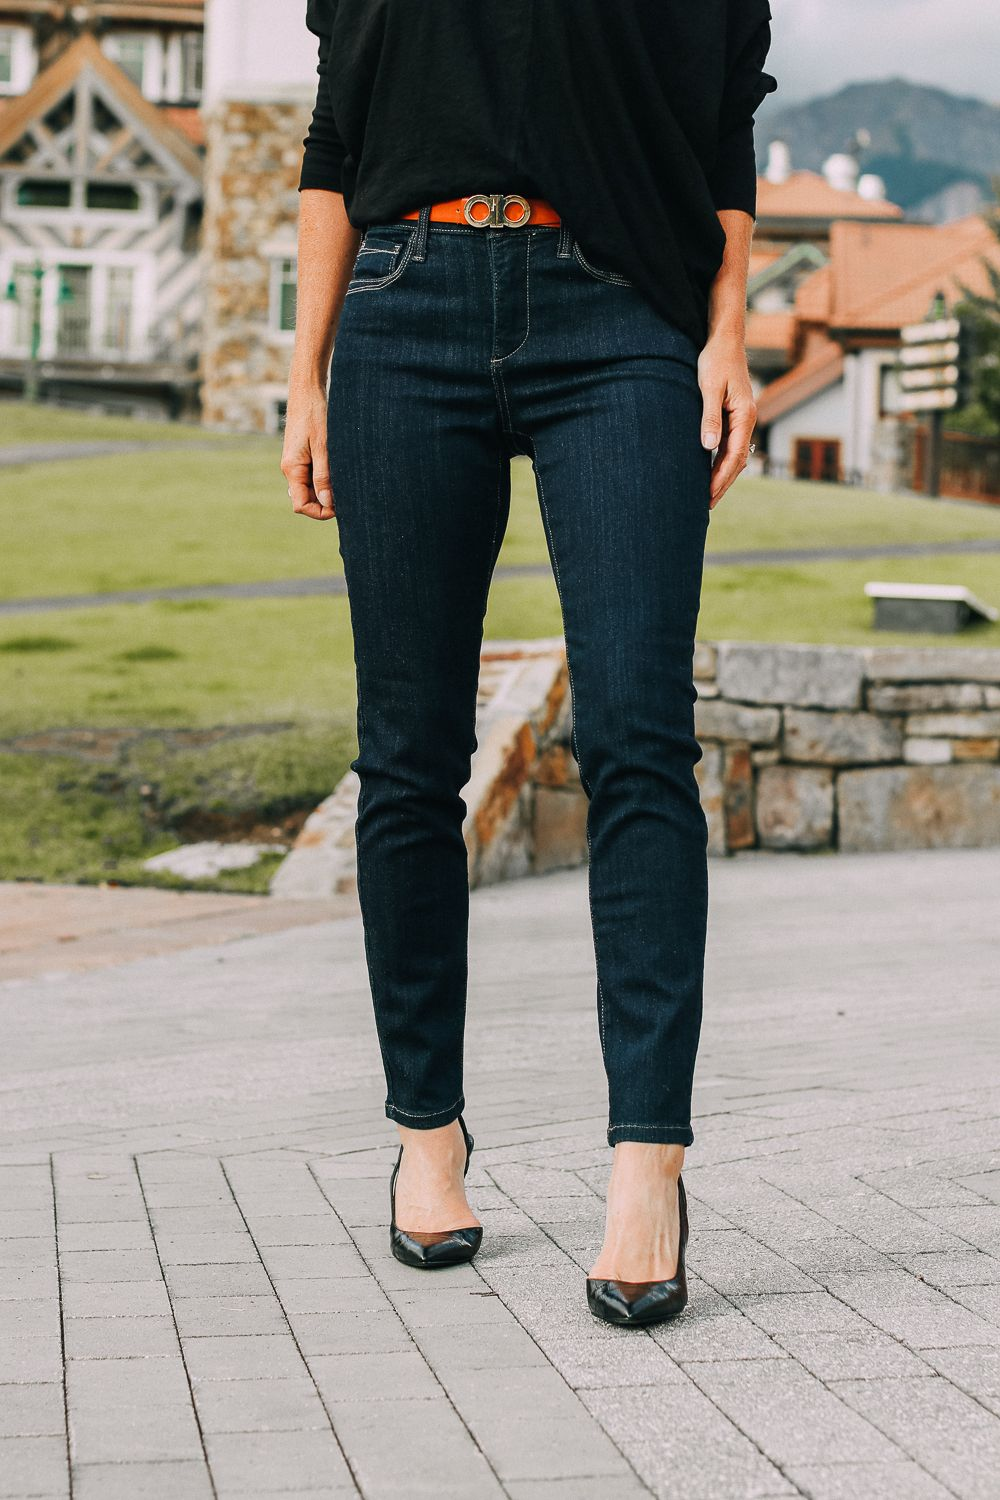 Best jeans for curves jeans that make you look slimmer